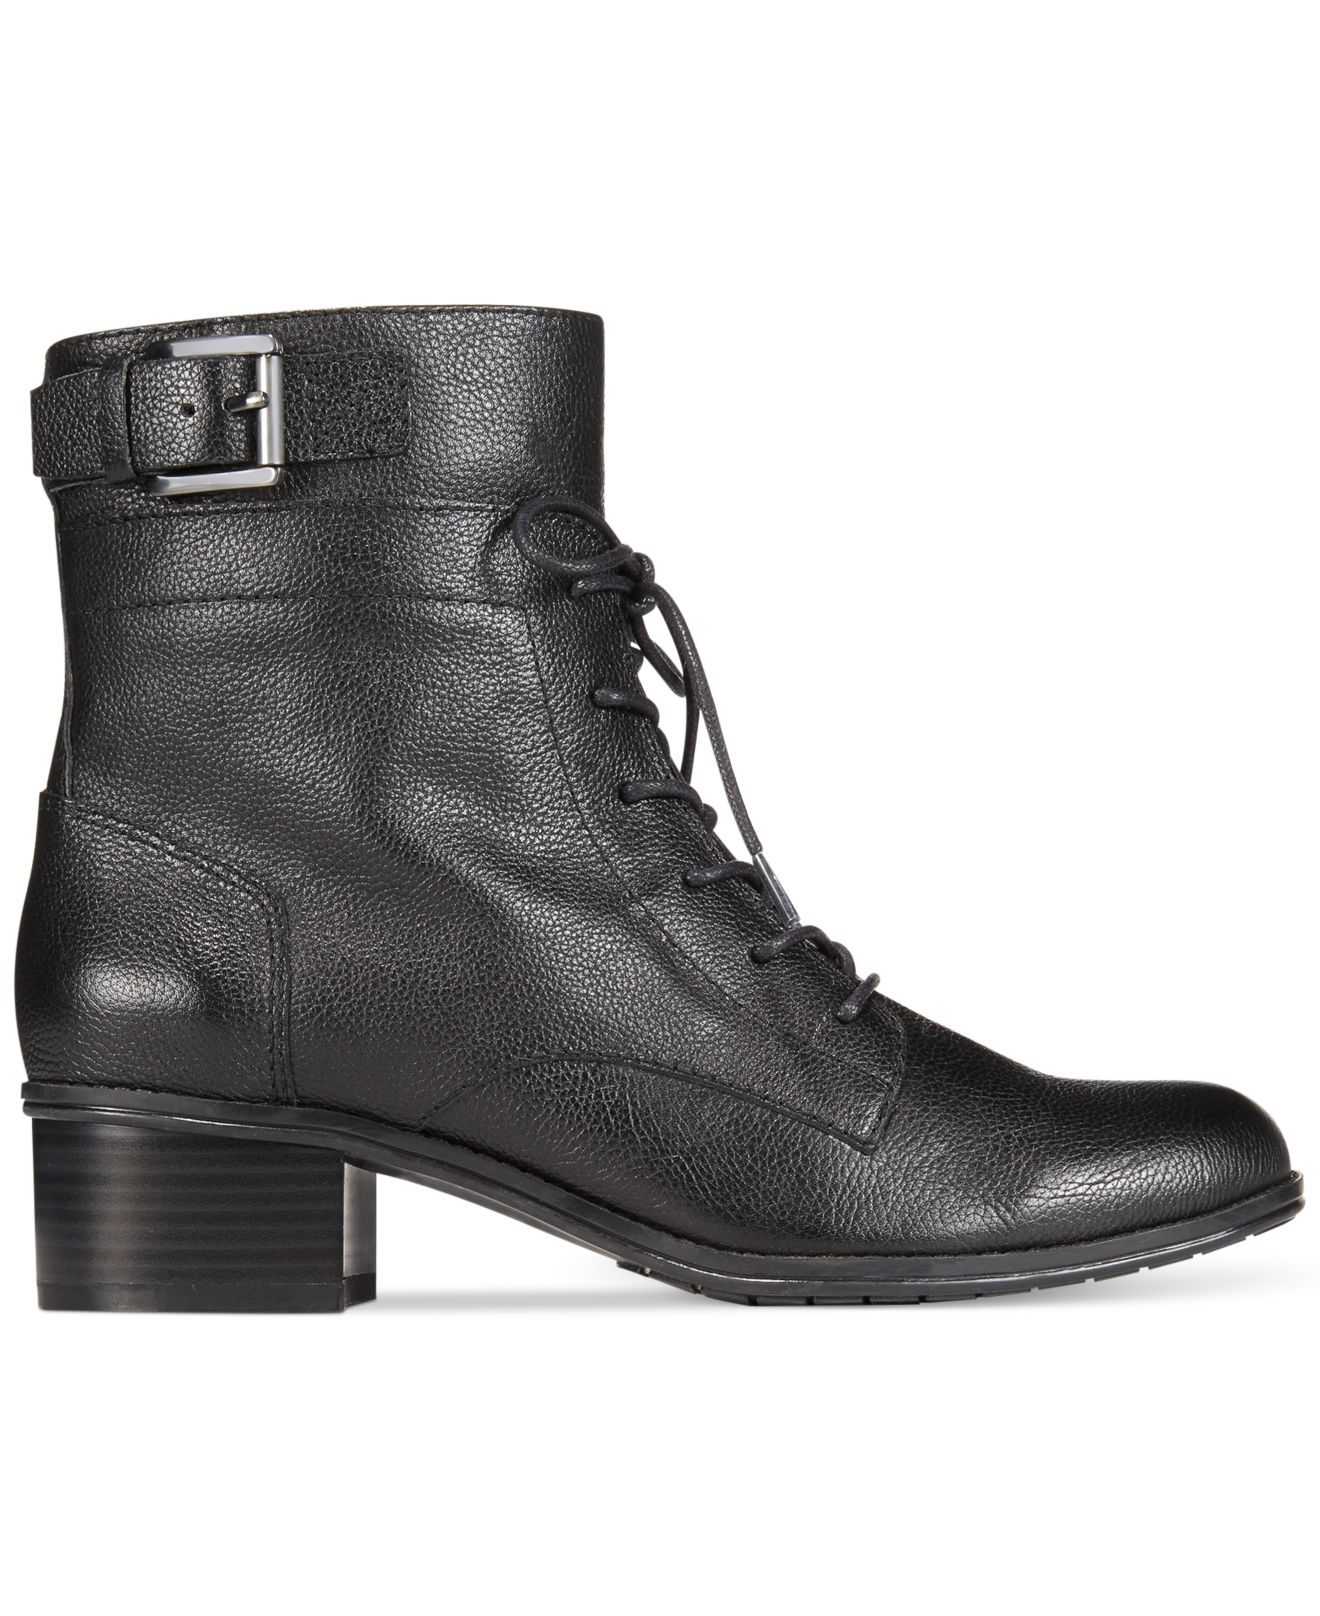 Lyst - Bandolino Clovis Lace Up Booties in Black